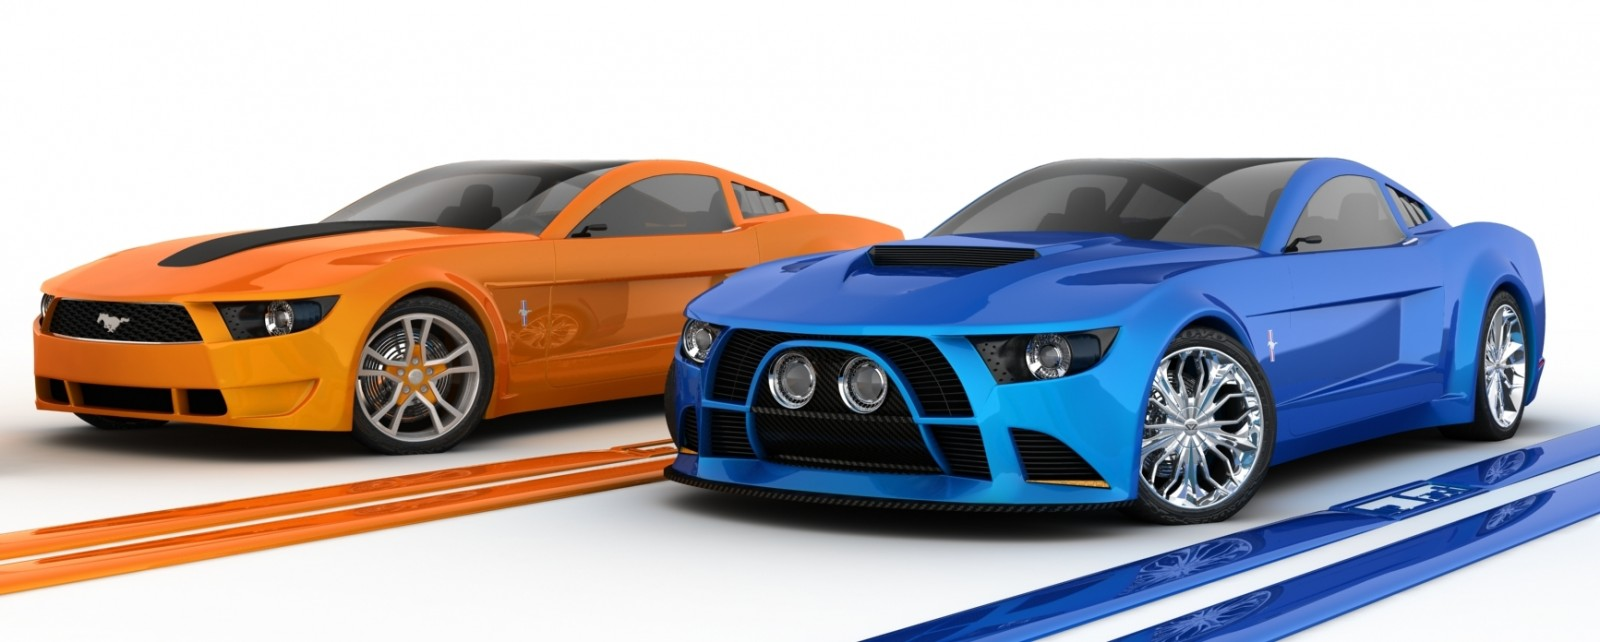 2006 Giugiaro Ford Mustang Concept Was Ringer vs In-House Ford Designs 6